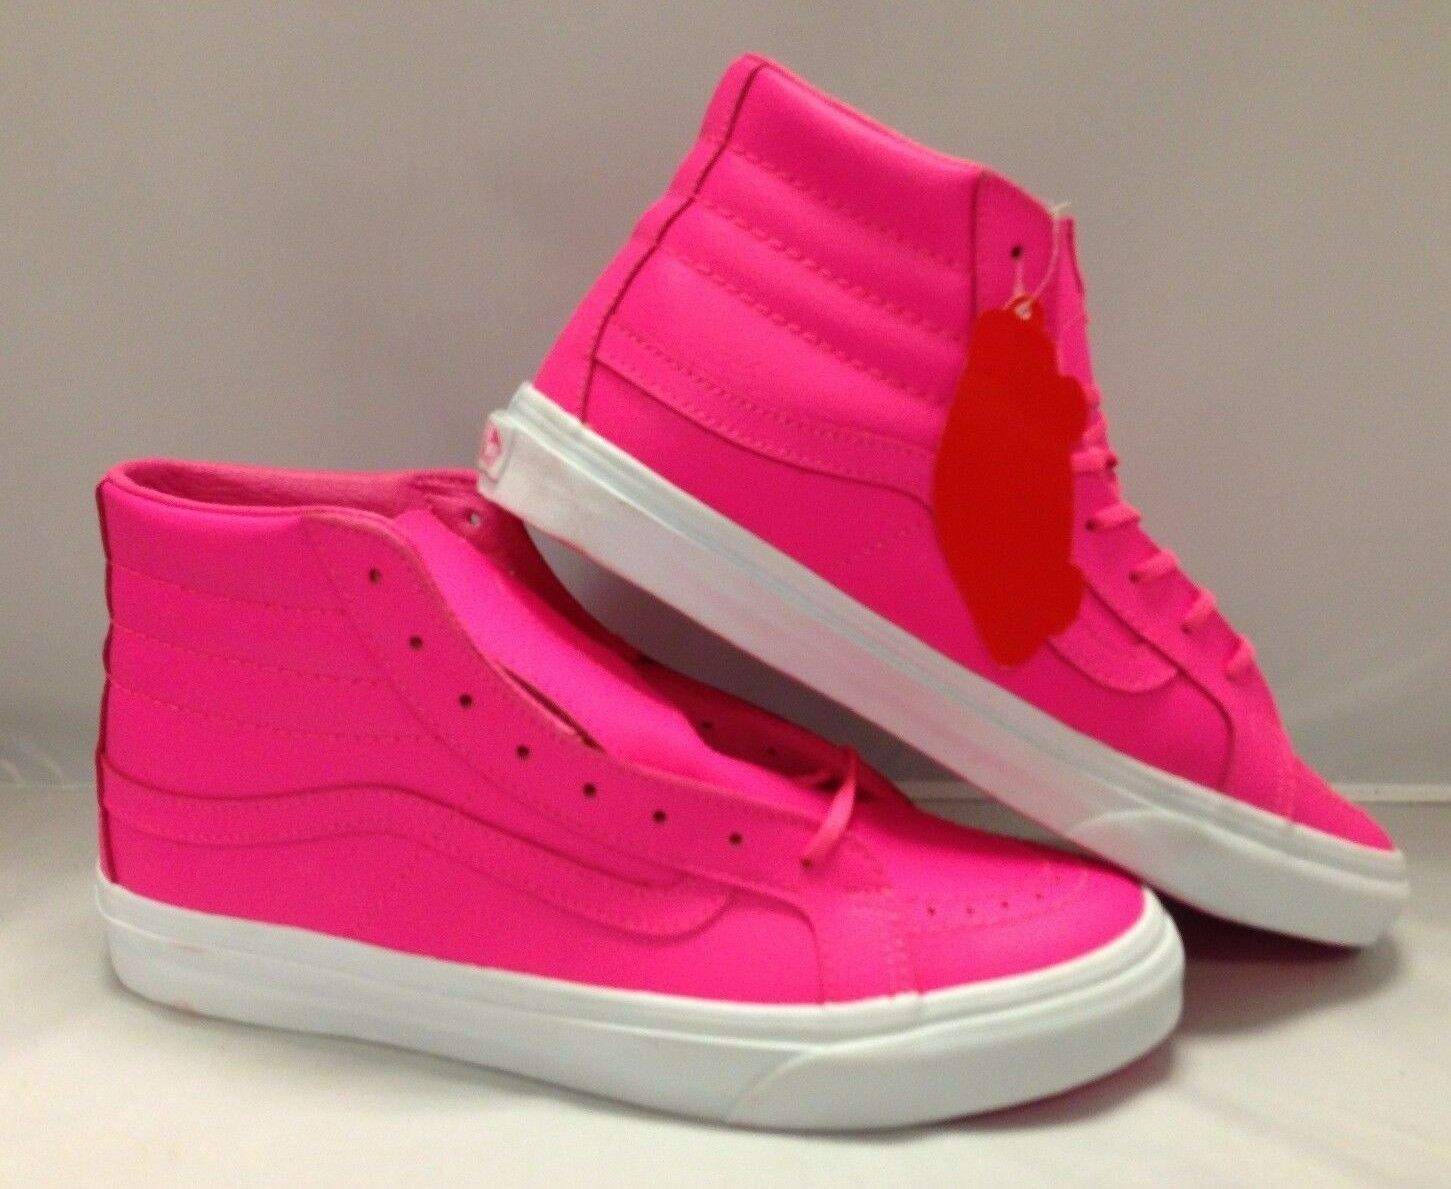 Vans Men's shoes ''Sk8'Hi Slim'' (Neon Leather) neon Pink